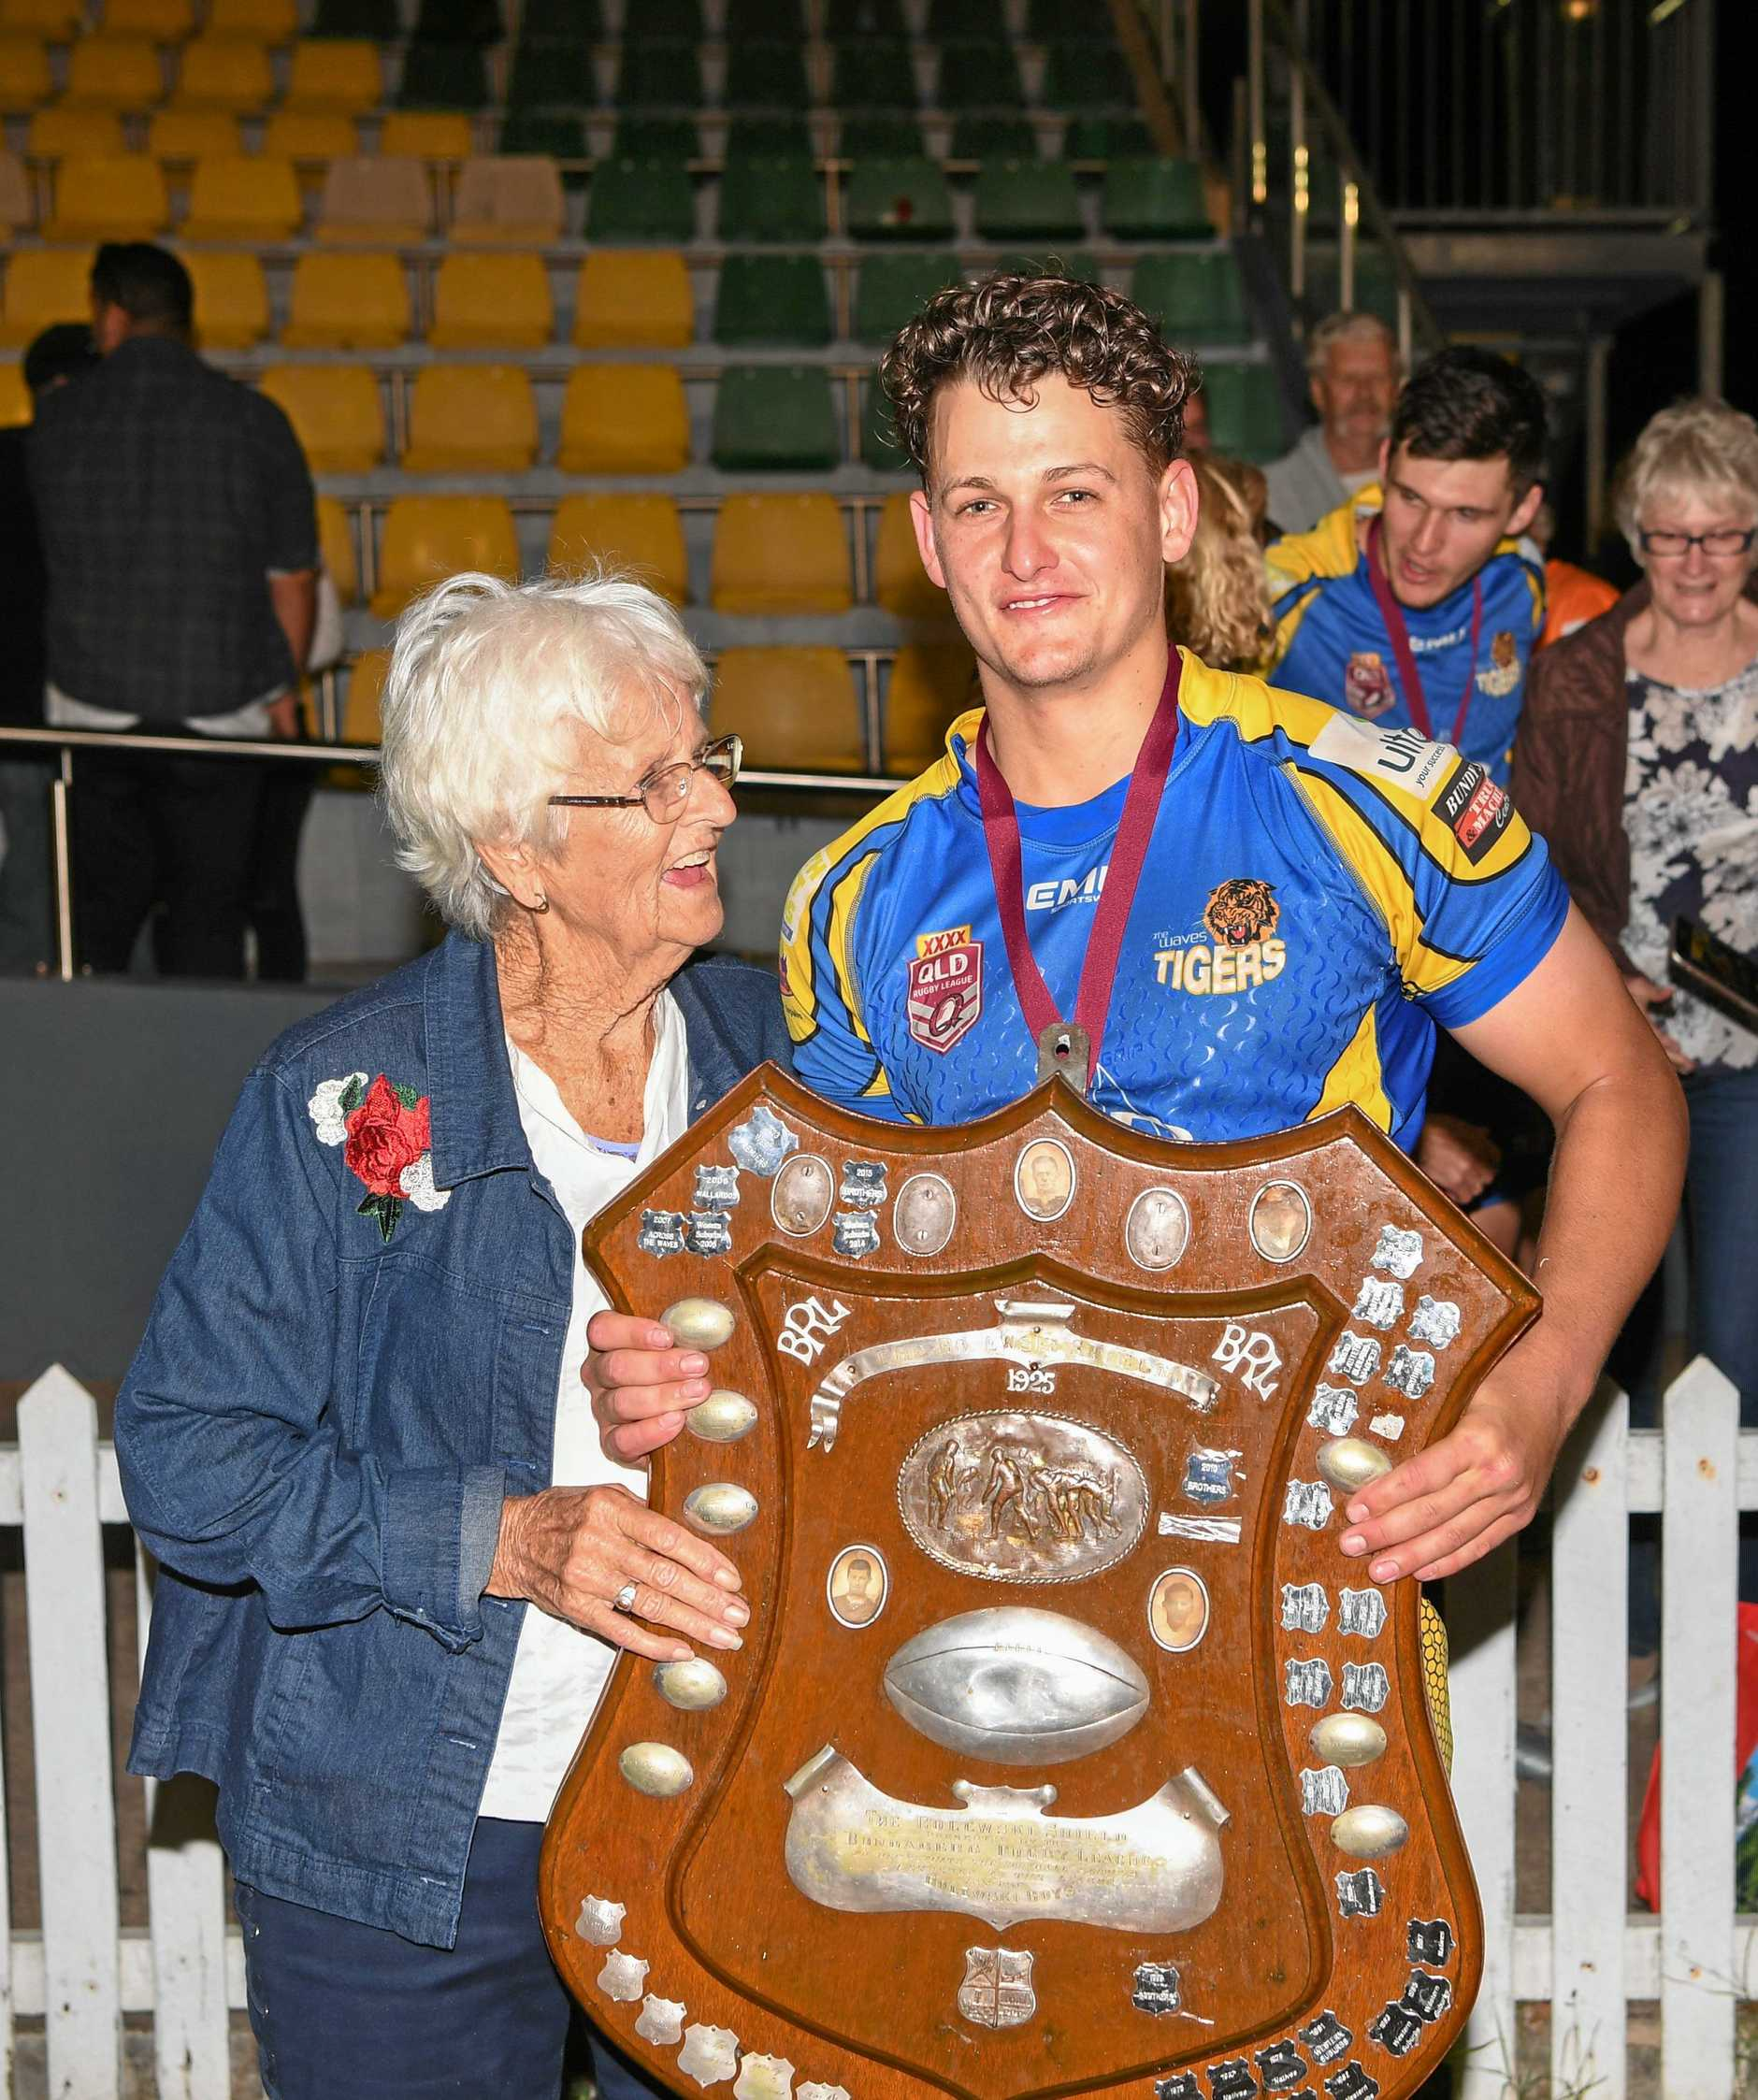 Dan McLennan with his grandmother after The Waves won last year's grand final.